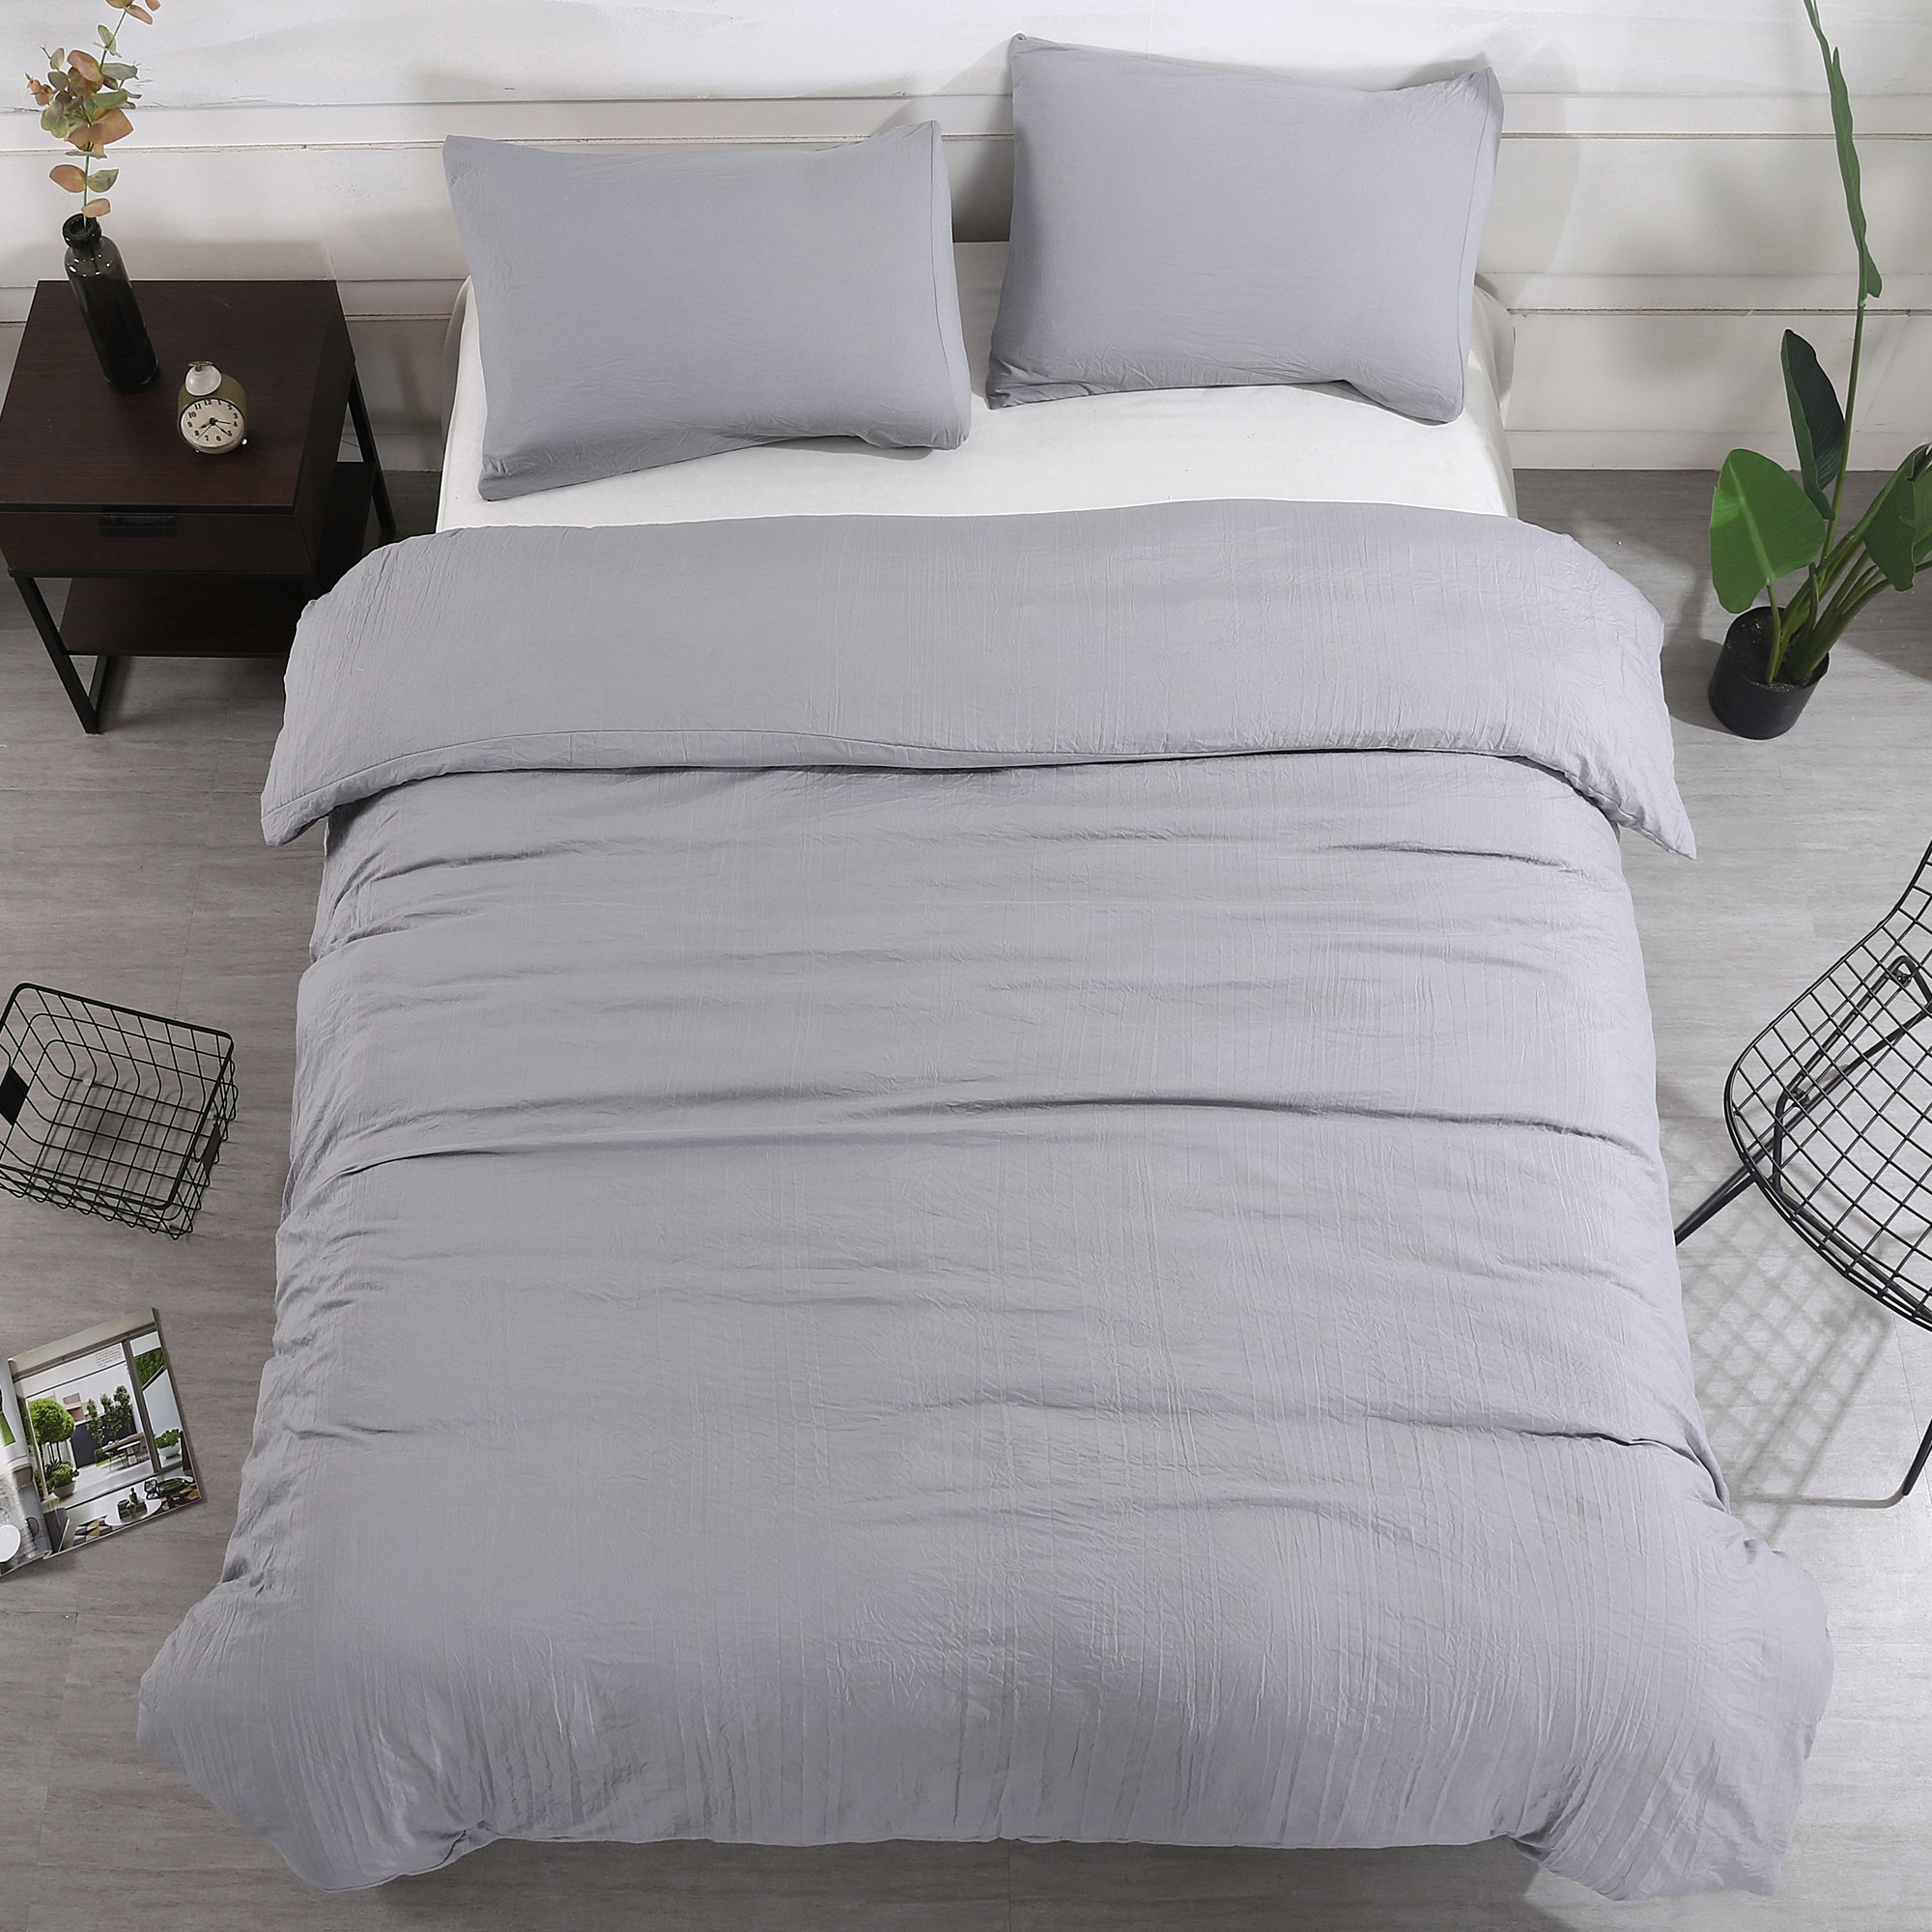 Duvet Cover Set 3 Pieces(2pc Pillowcase and 1pc Duvet Cover King 104''x90''),Grey Natural Wrinkled Look Bedding with Zipper Closure by WAFTING,Lightweight Hypoallergenic Polyester-NO Comforter